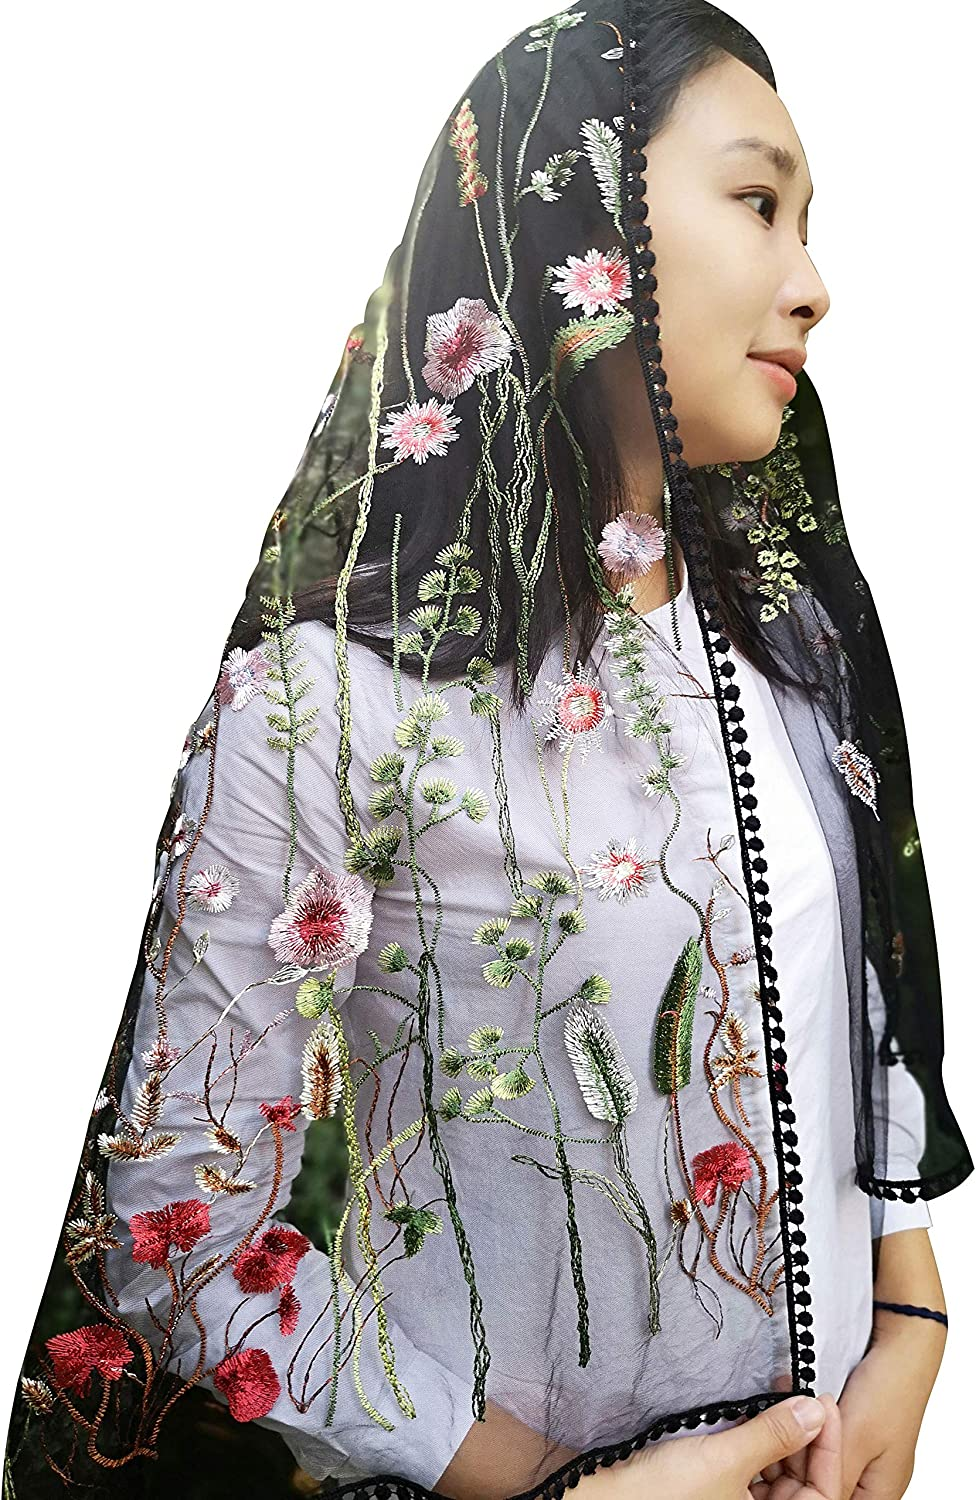 Sevenflowers Wildflowers Floral Lace Wrap Mantilla Floral Vintage Inspired Lace Chapel Veil Y038